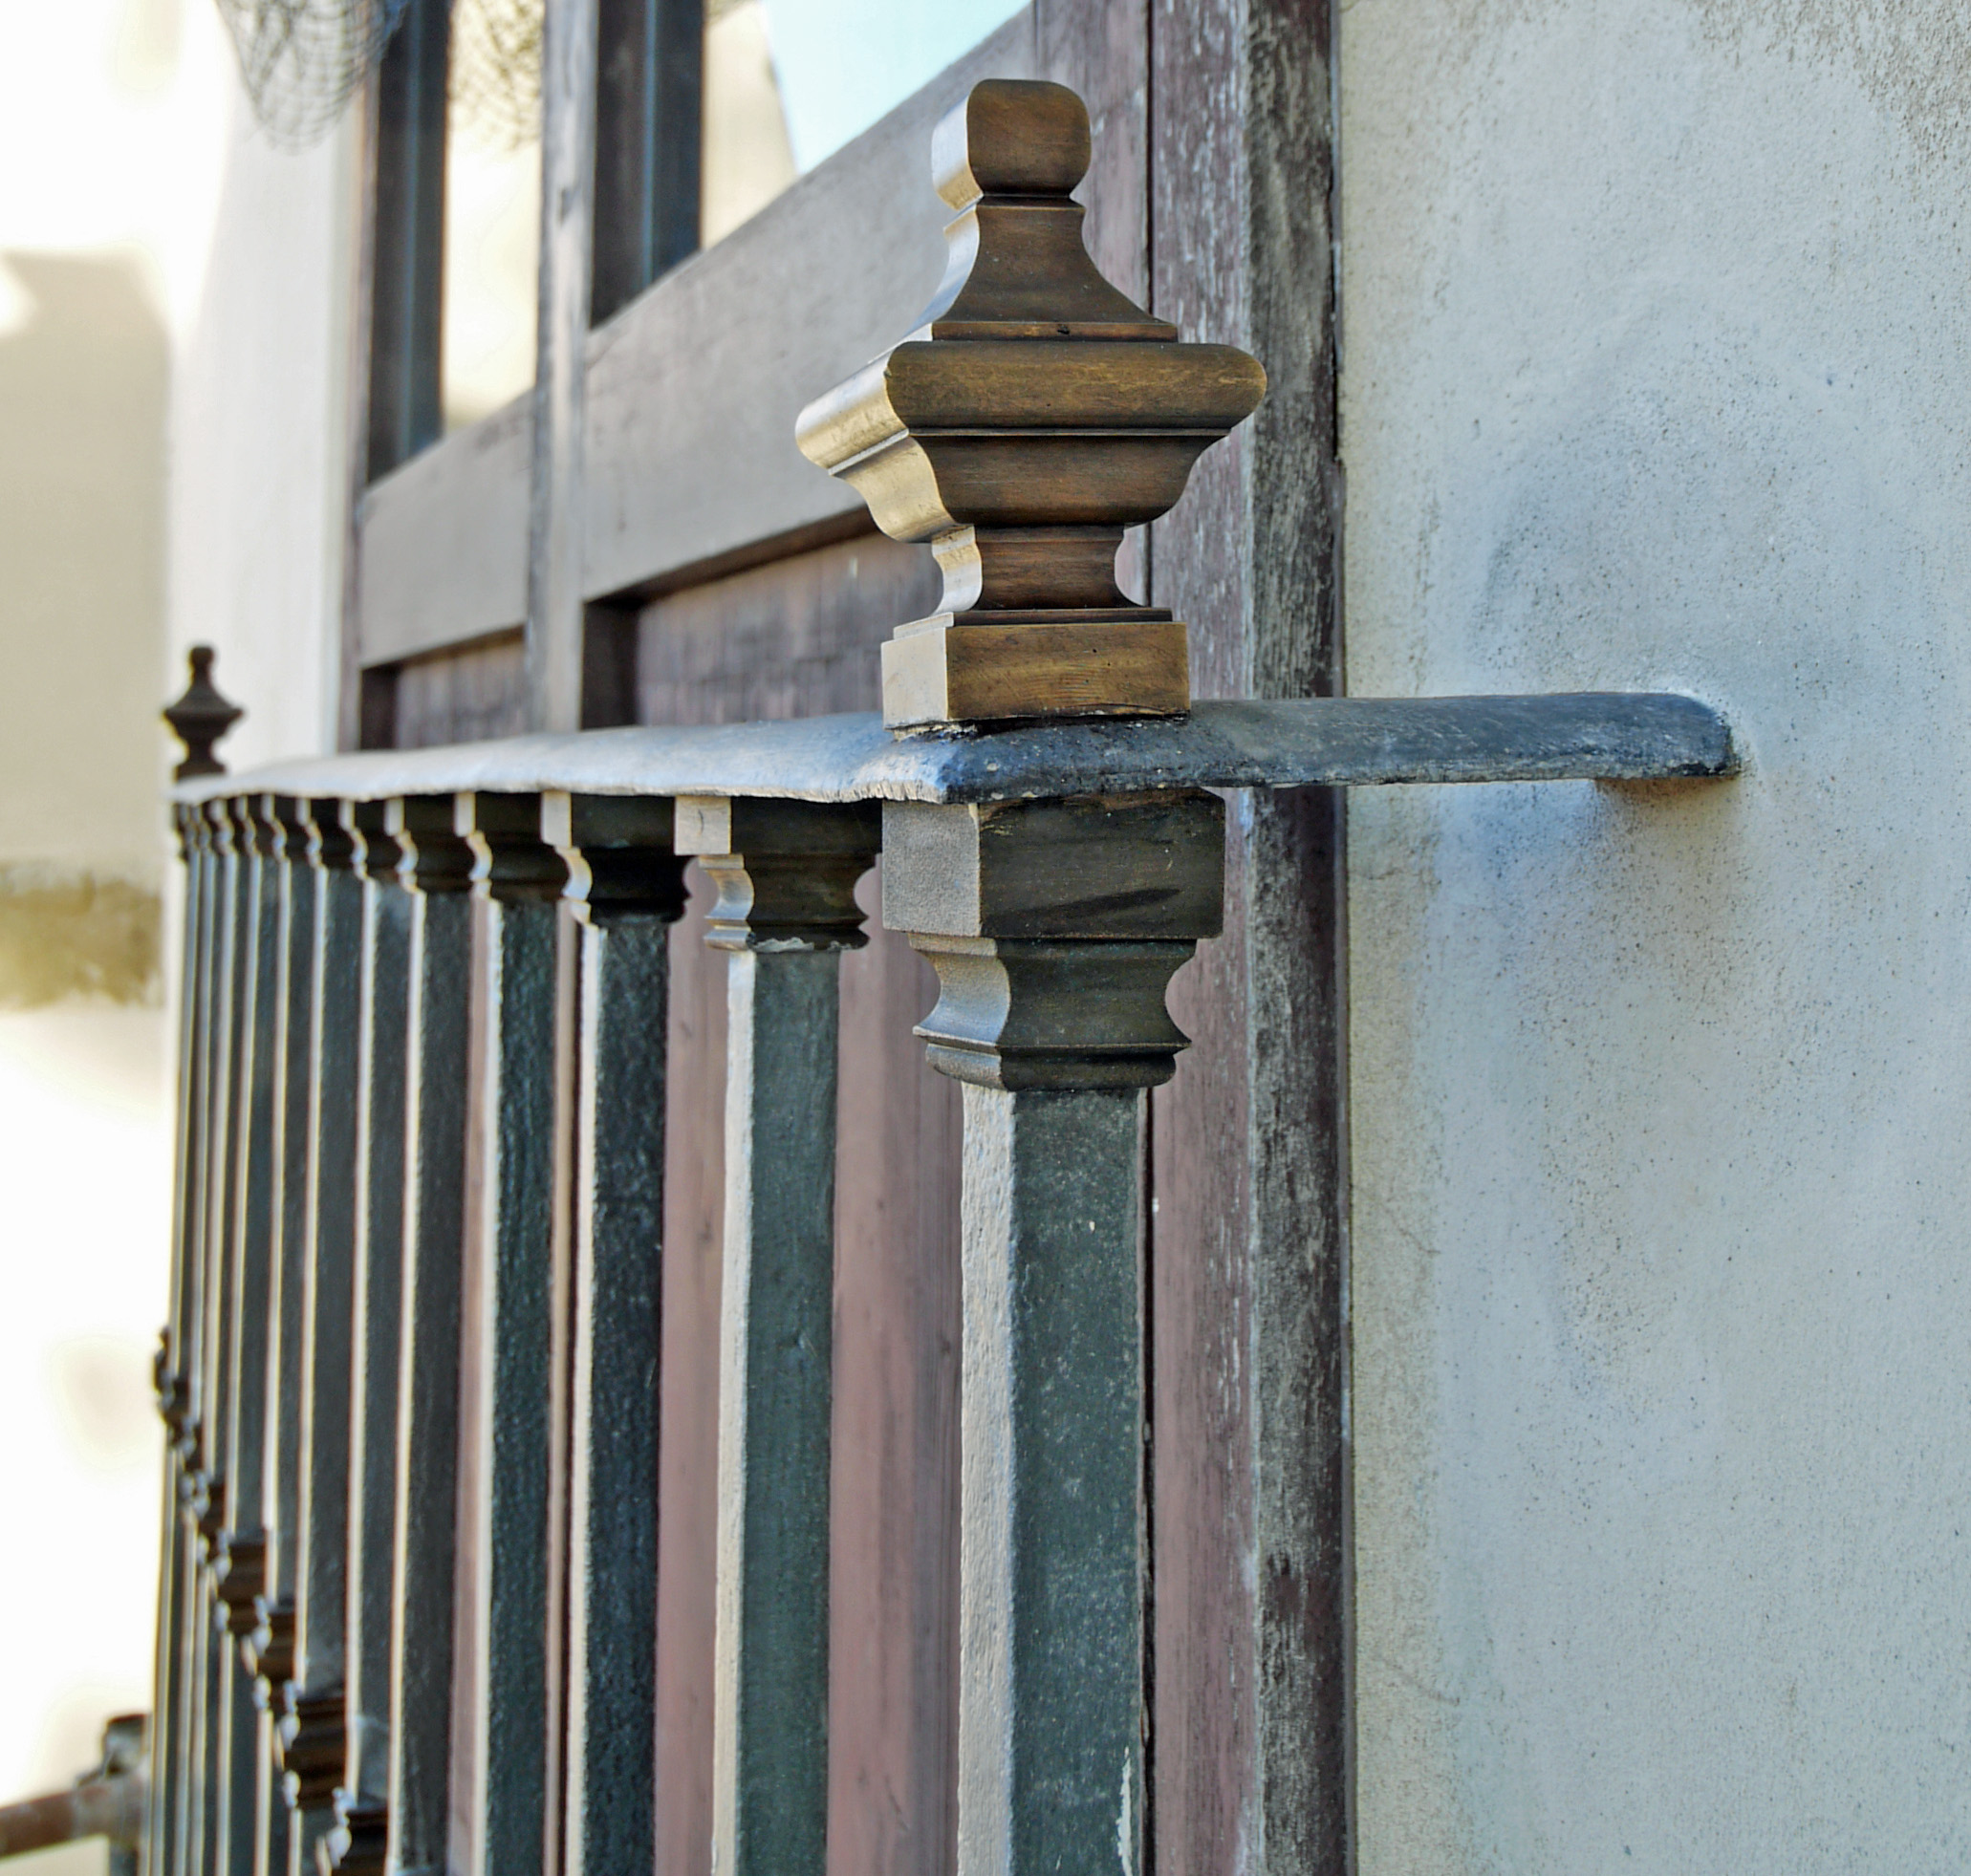 Brass antique railings